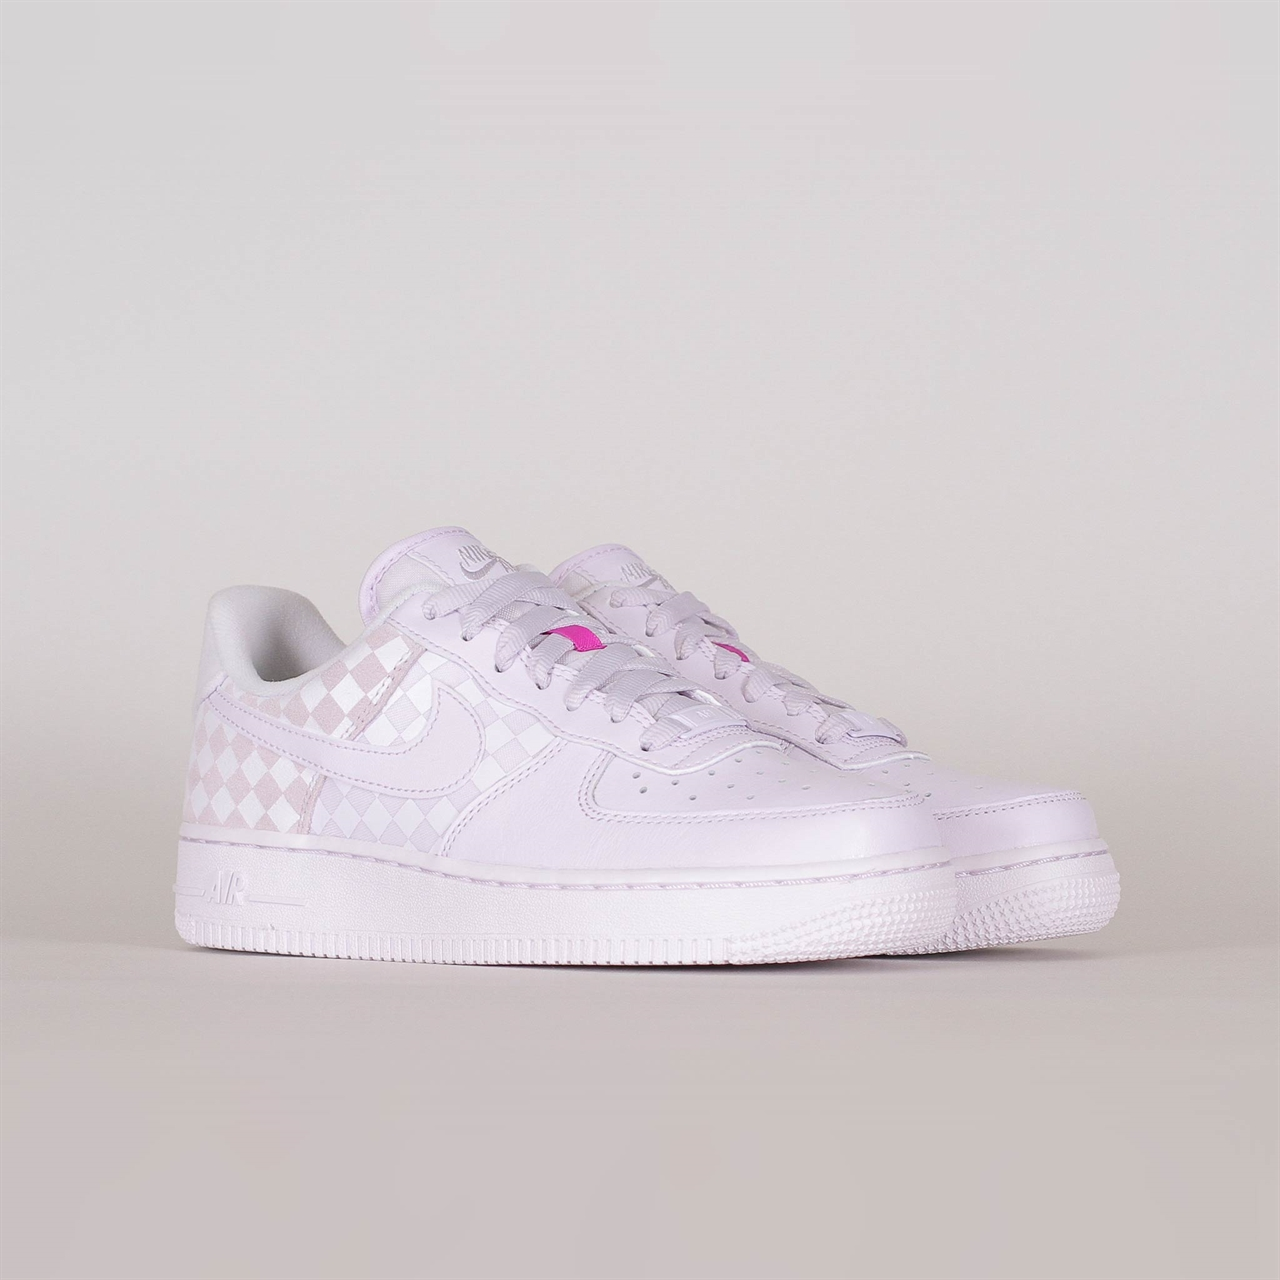 newest 44ab2 cce7f Shelta - Nike Womens Air Force 1 Low (CJ9700-500)